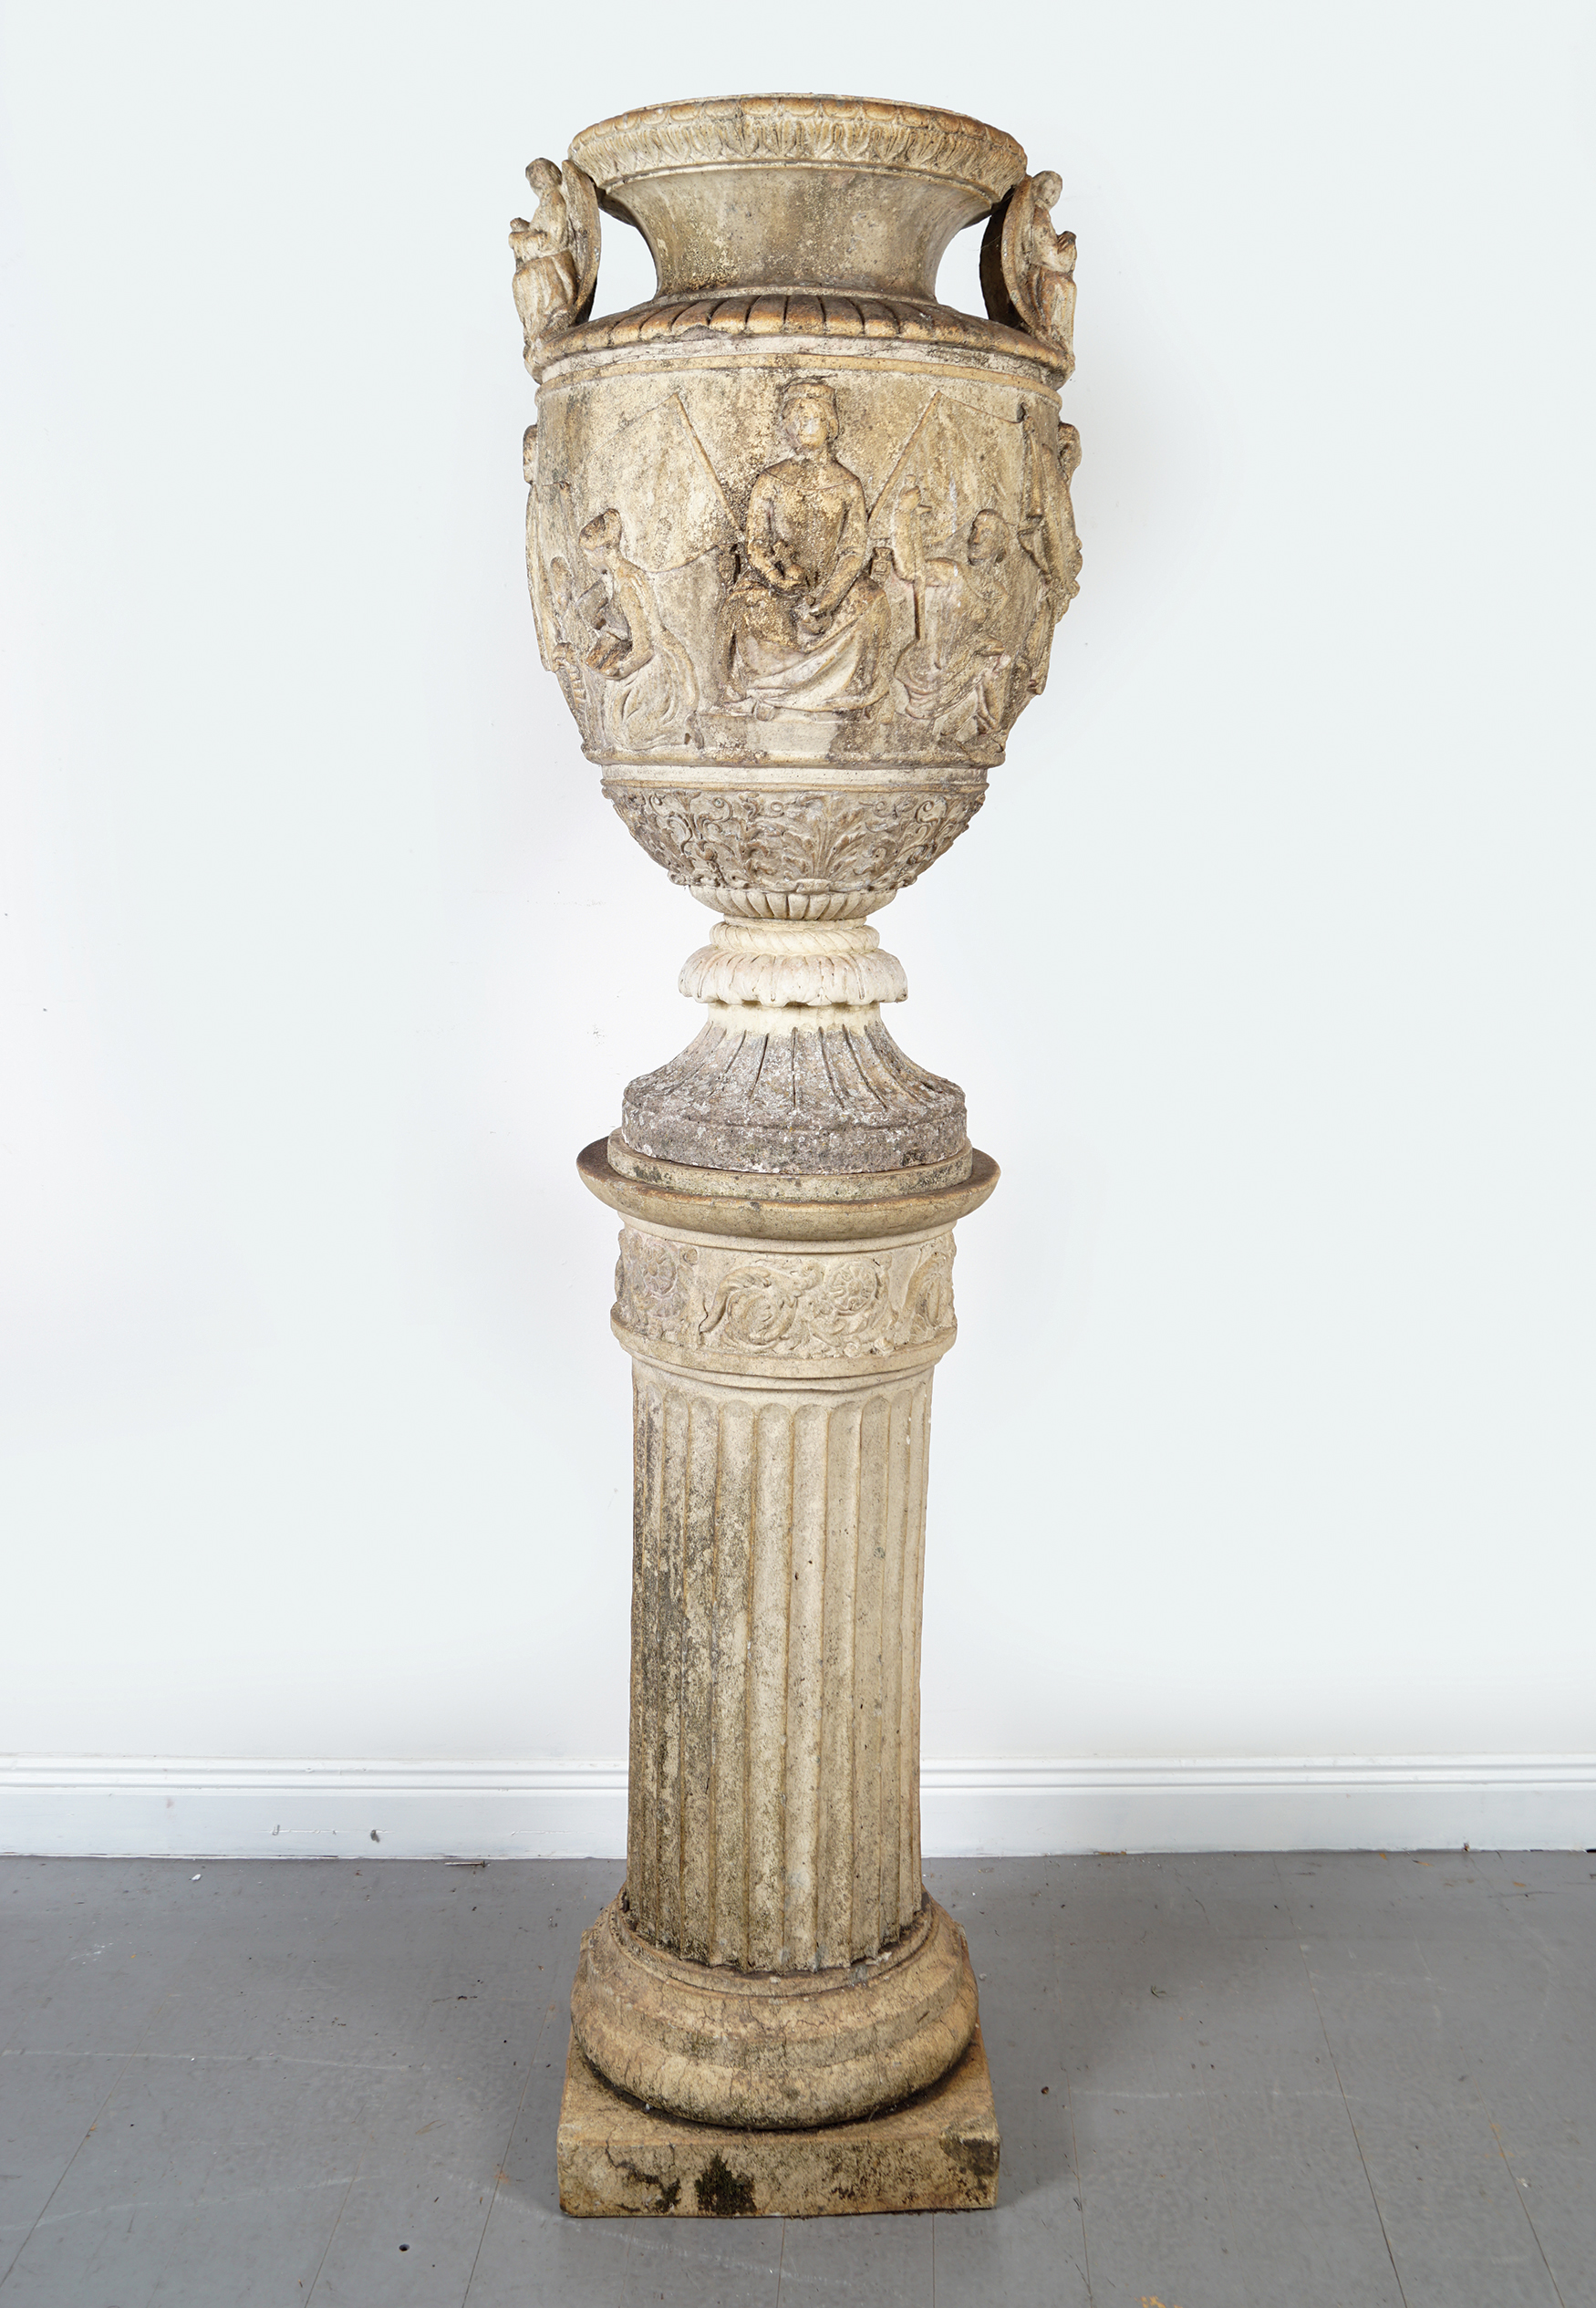 Lot 5 - 19TH-CENTURY TERRACOTTA CLASSICAL URN